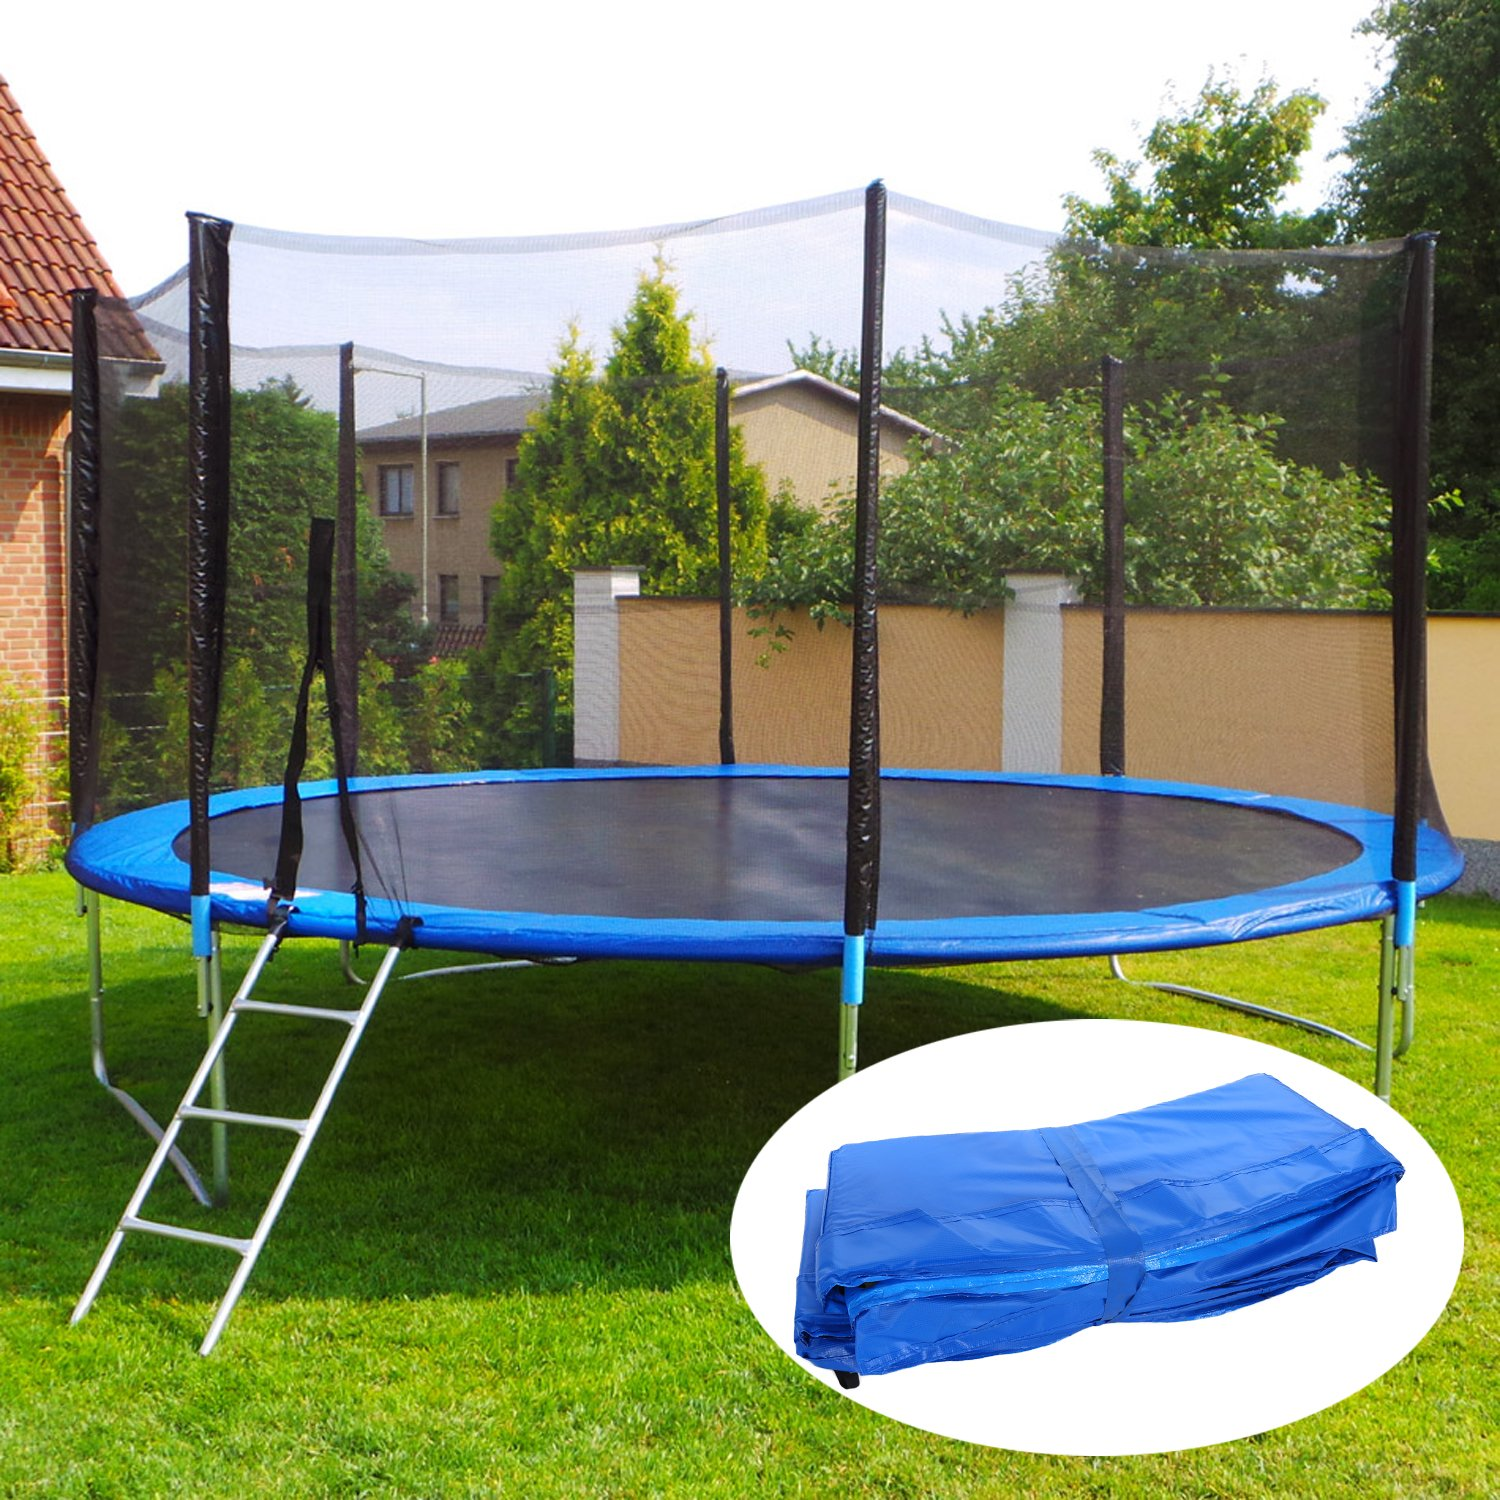 15 14 12 10 Ft Replacement Trampoline Surround PVC Pad Foam Safety Spring Cover Padding Pads (Blue, 15 Ft) by Zafuar Sports (Image #6)